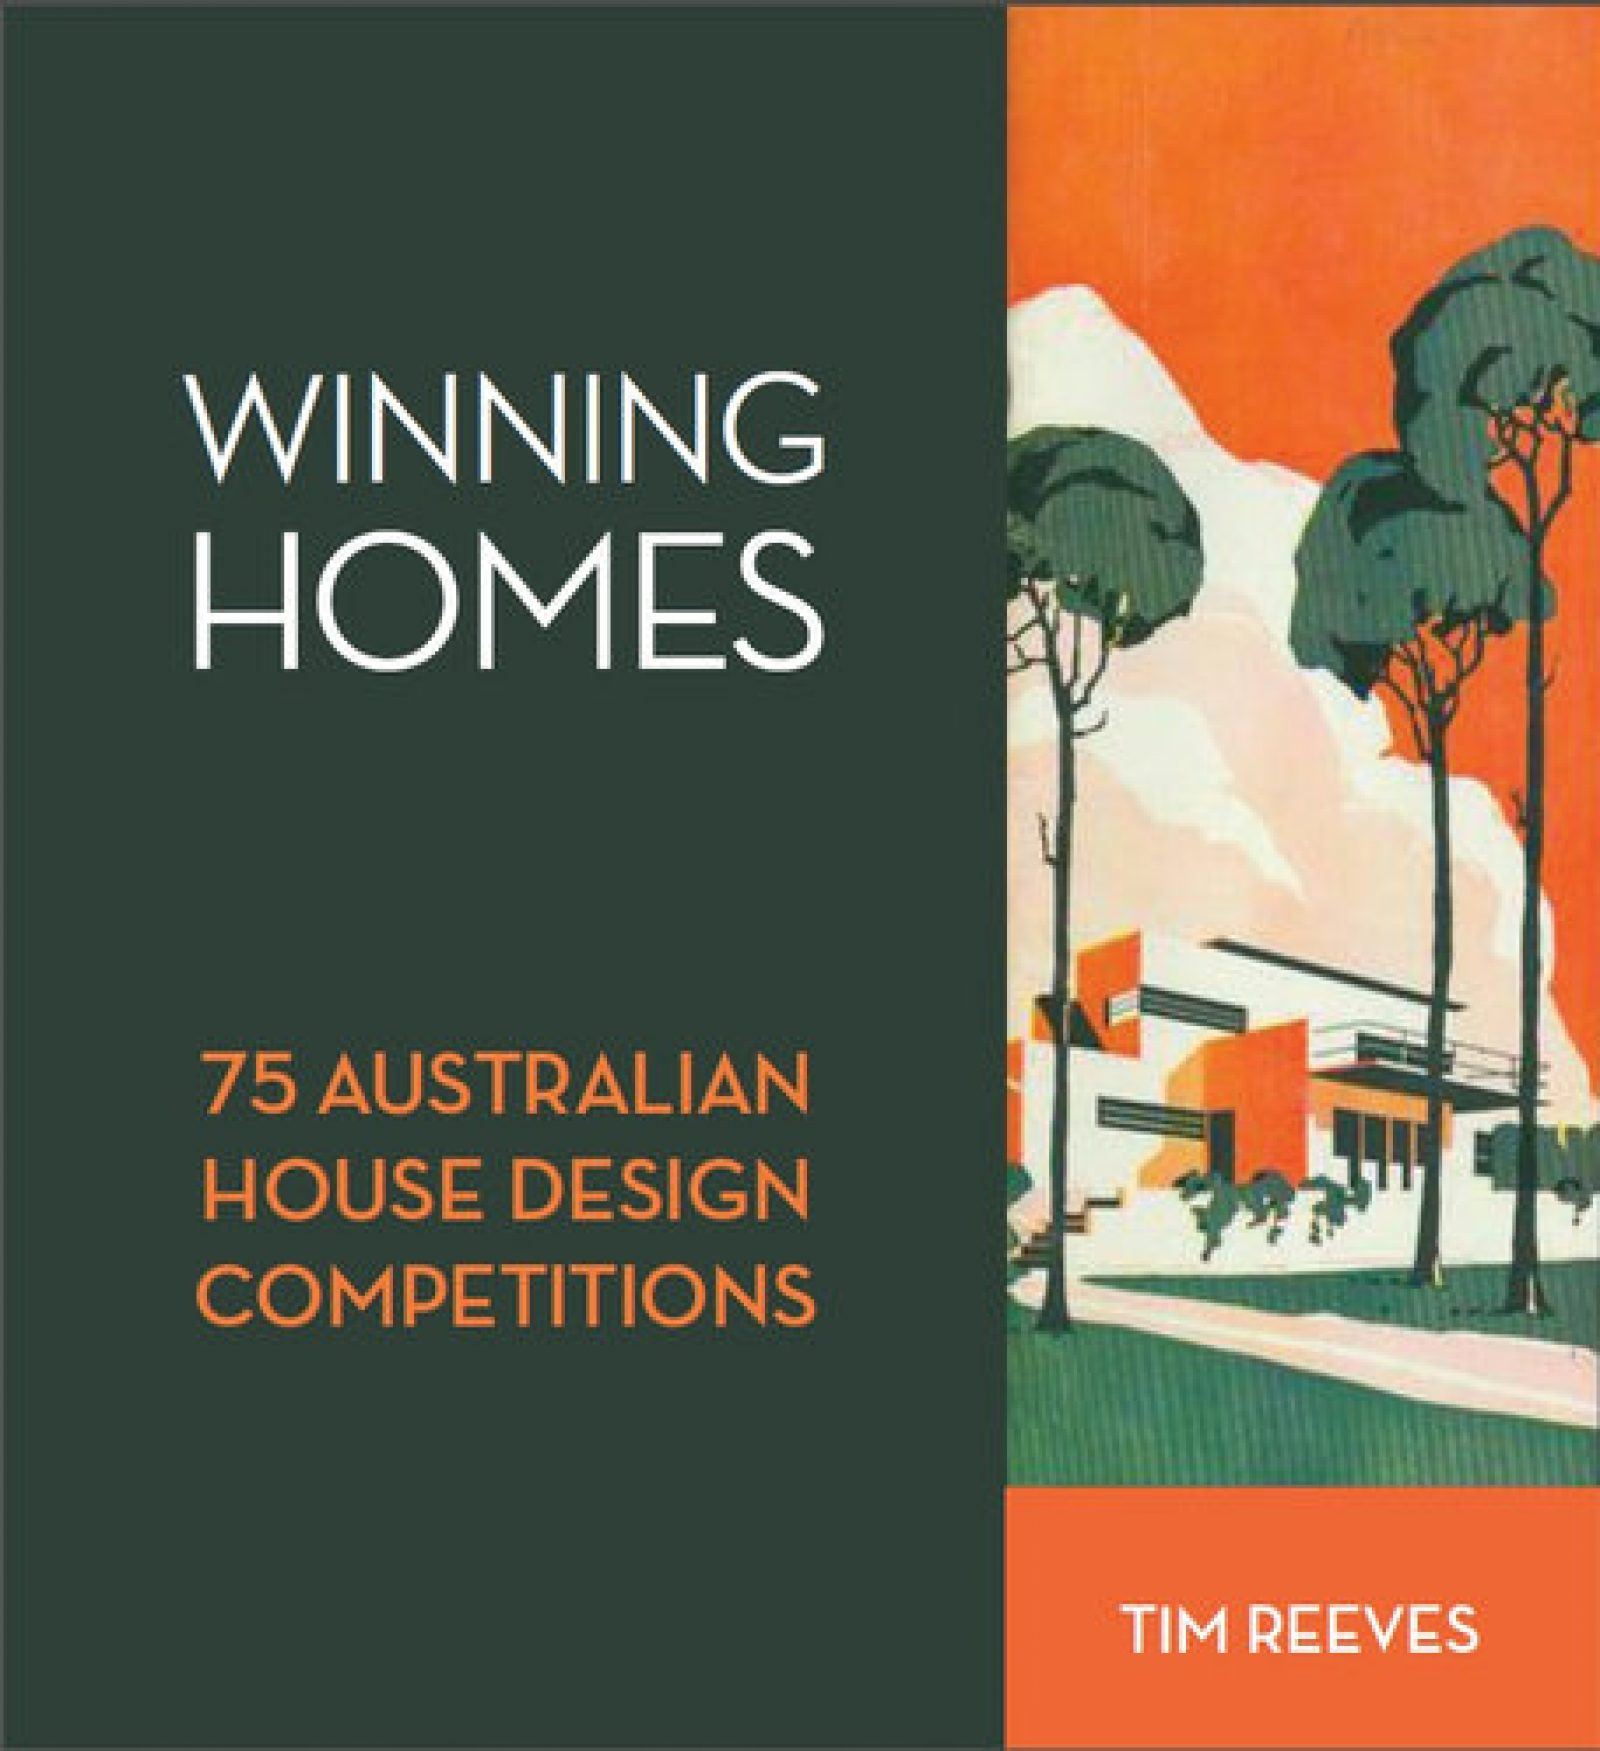 Tim Reeves: House Design Competition in the ACT